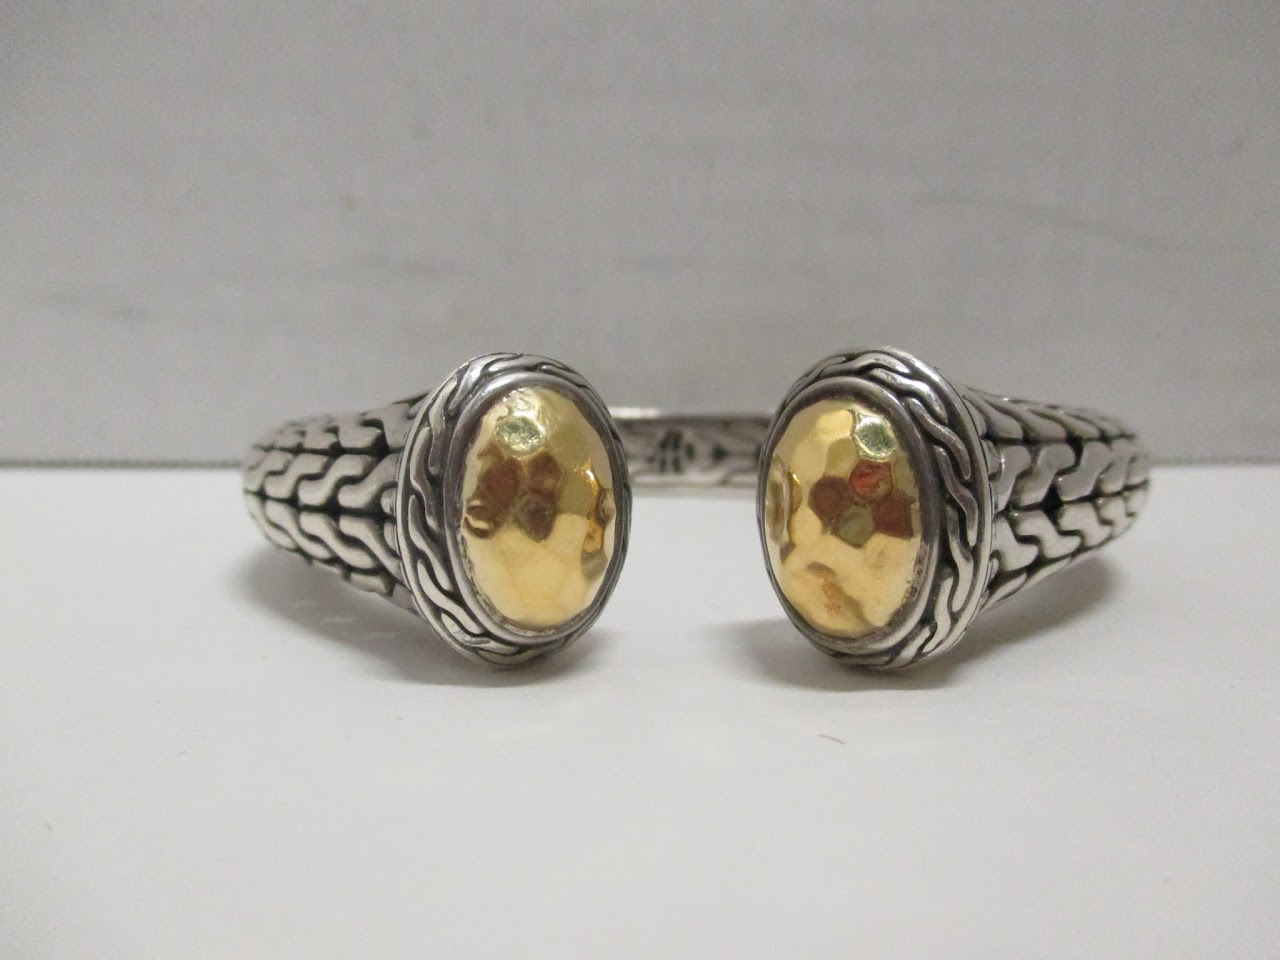 22k and Sterling Cuff